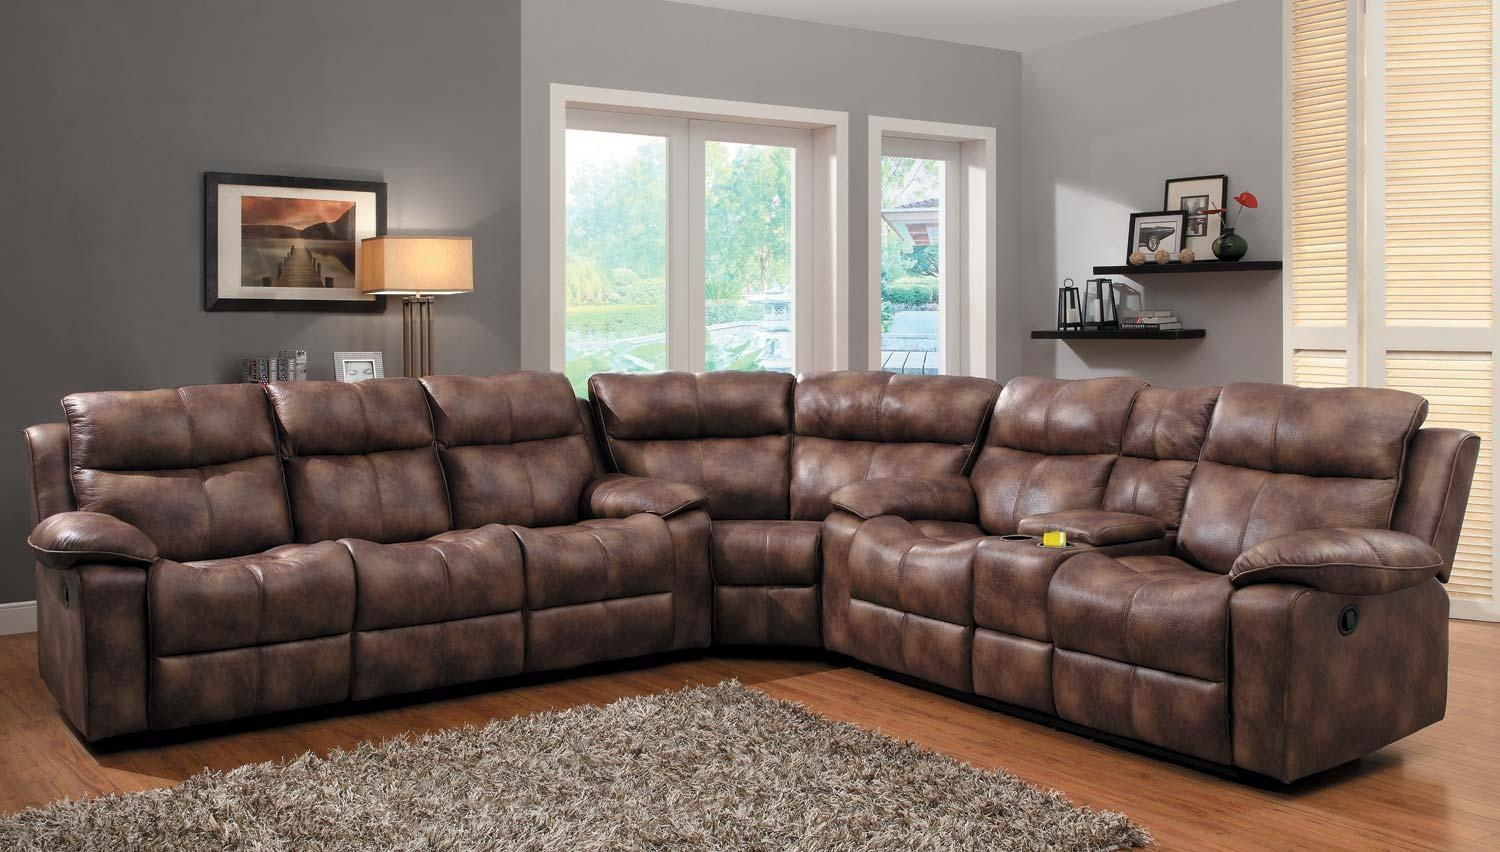 Homelegance Brooklyn Heights Reclining Sectional Sofa Set Pertaining To Recliner Sectional Sofas (Image 10 of 22)